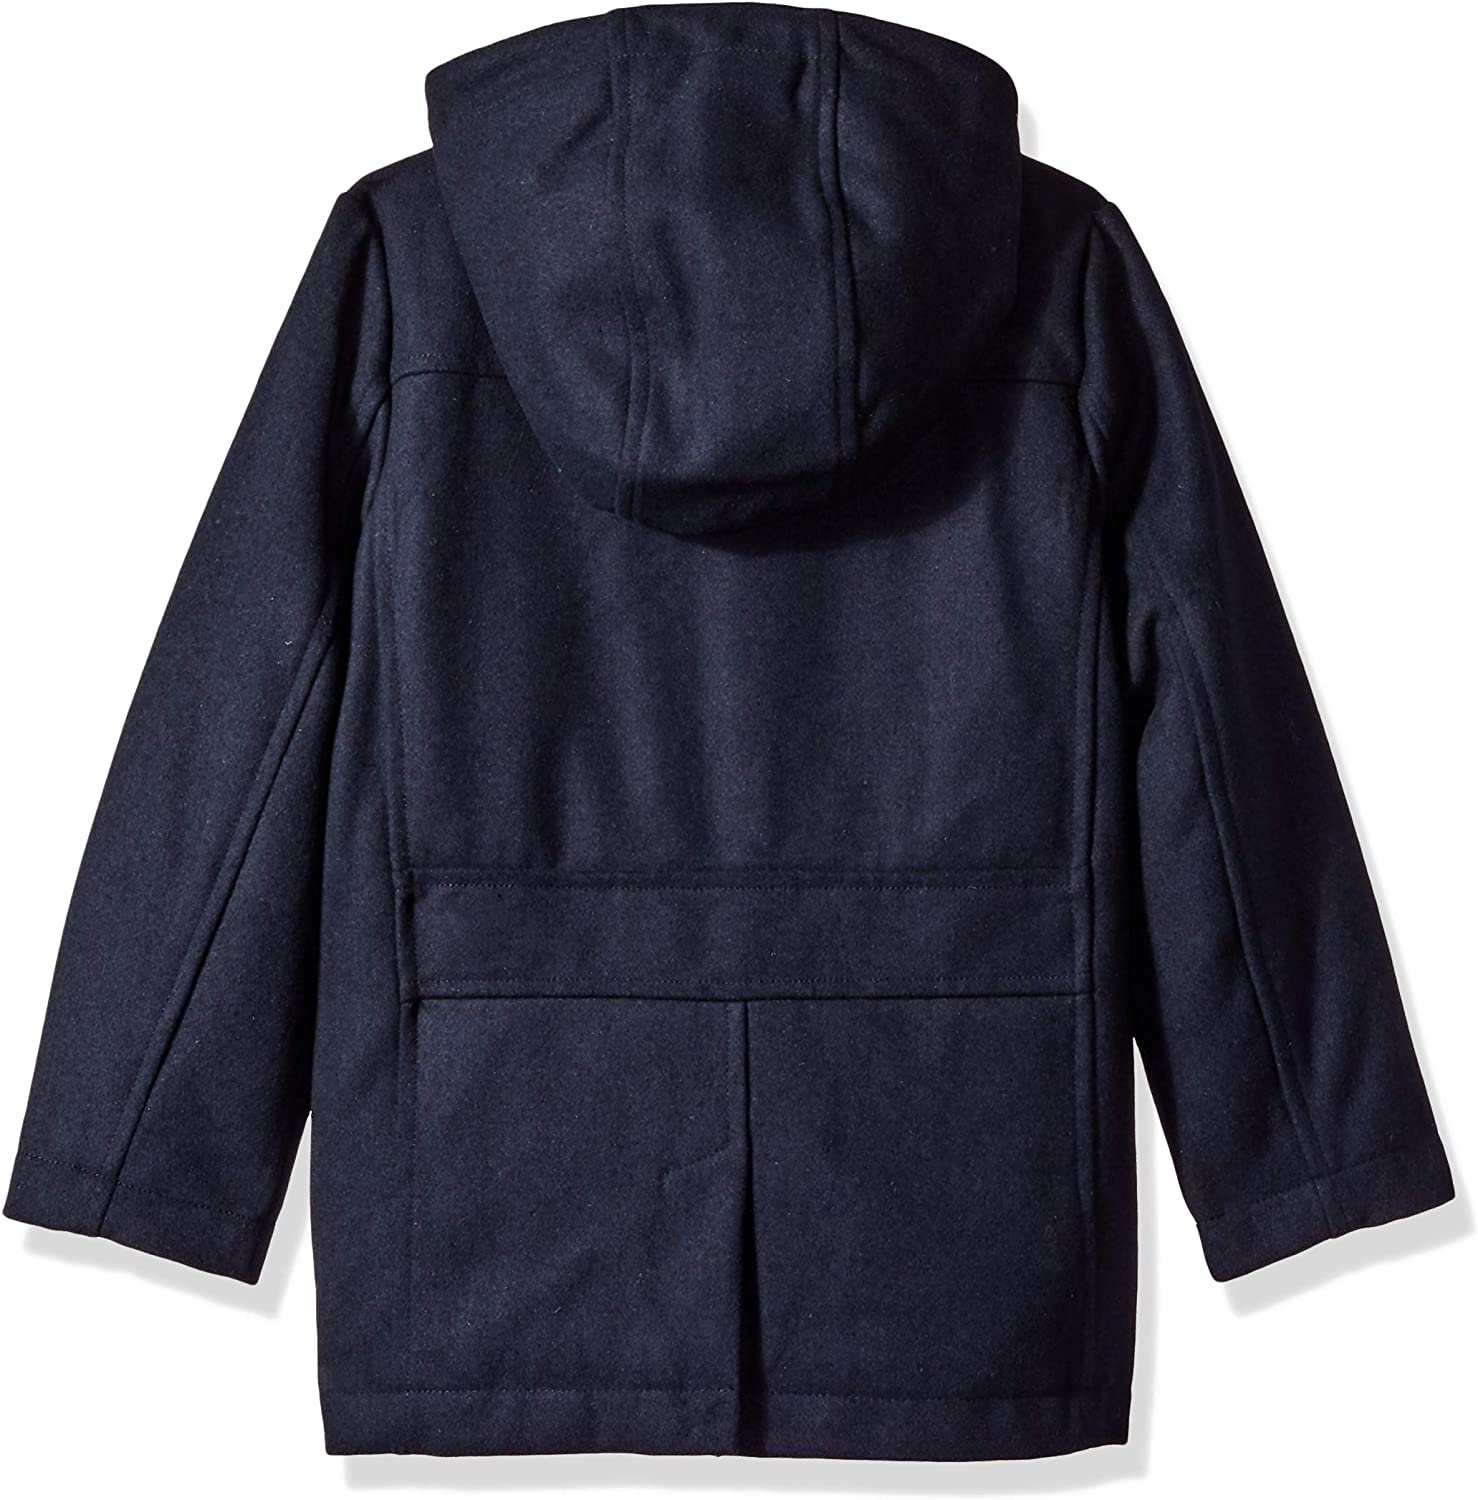 URBAN REPUBLIC boys Boys Wool Jacket